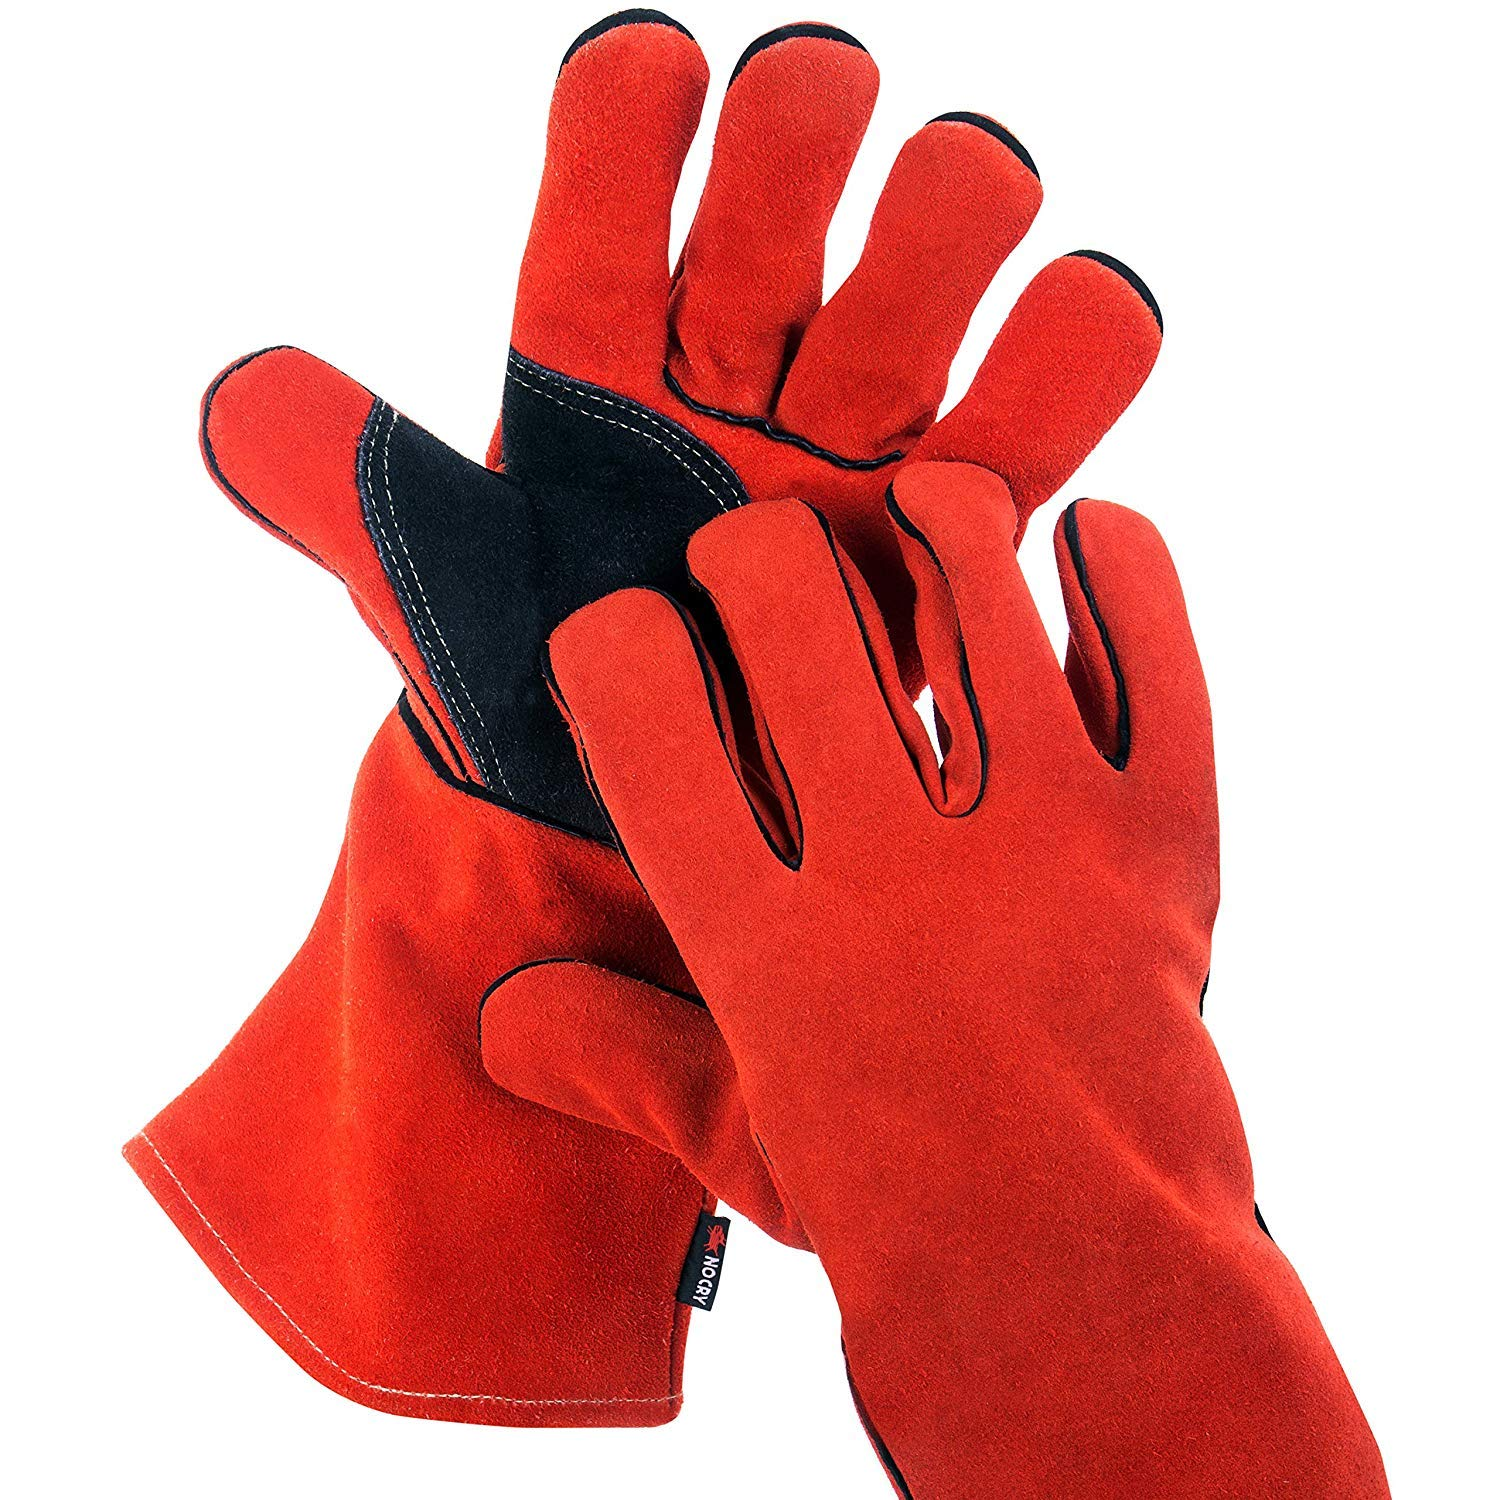 NoCry Heavy Duty Heat Resistant & Flame Retardant Welding & BBQ Gloves, Premium Cowhide Leather, Long 14 inch Forearm Protection. Red, Size Large by NoCry